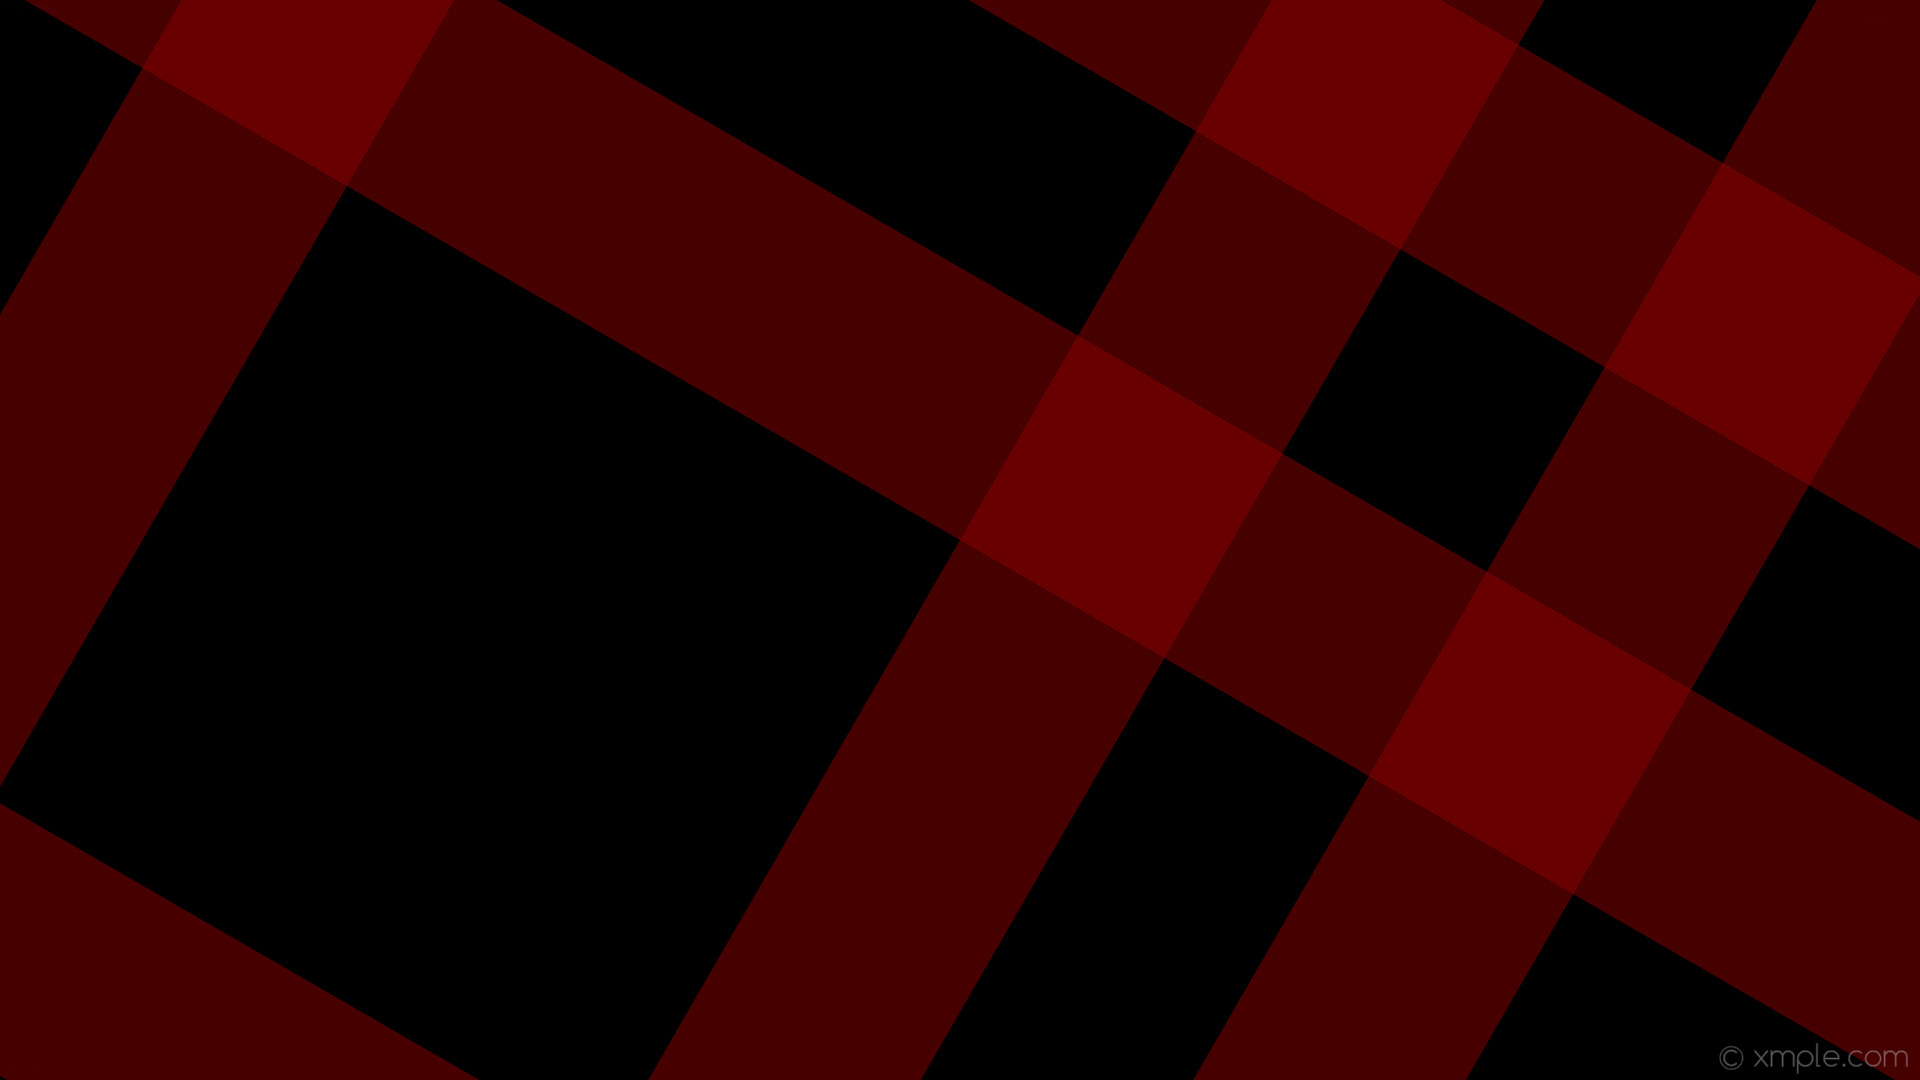 wallpaper dual black striped red gingham dark red #000000 #8b0000 60° 236px